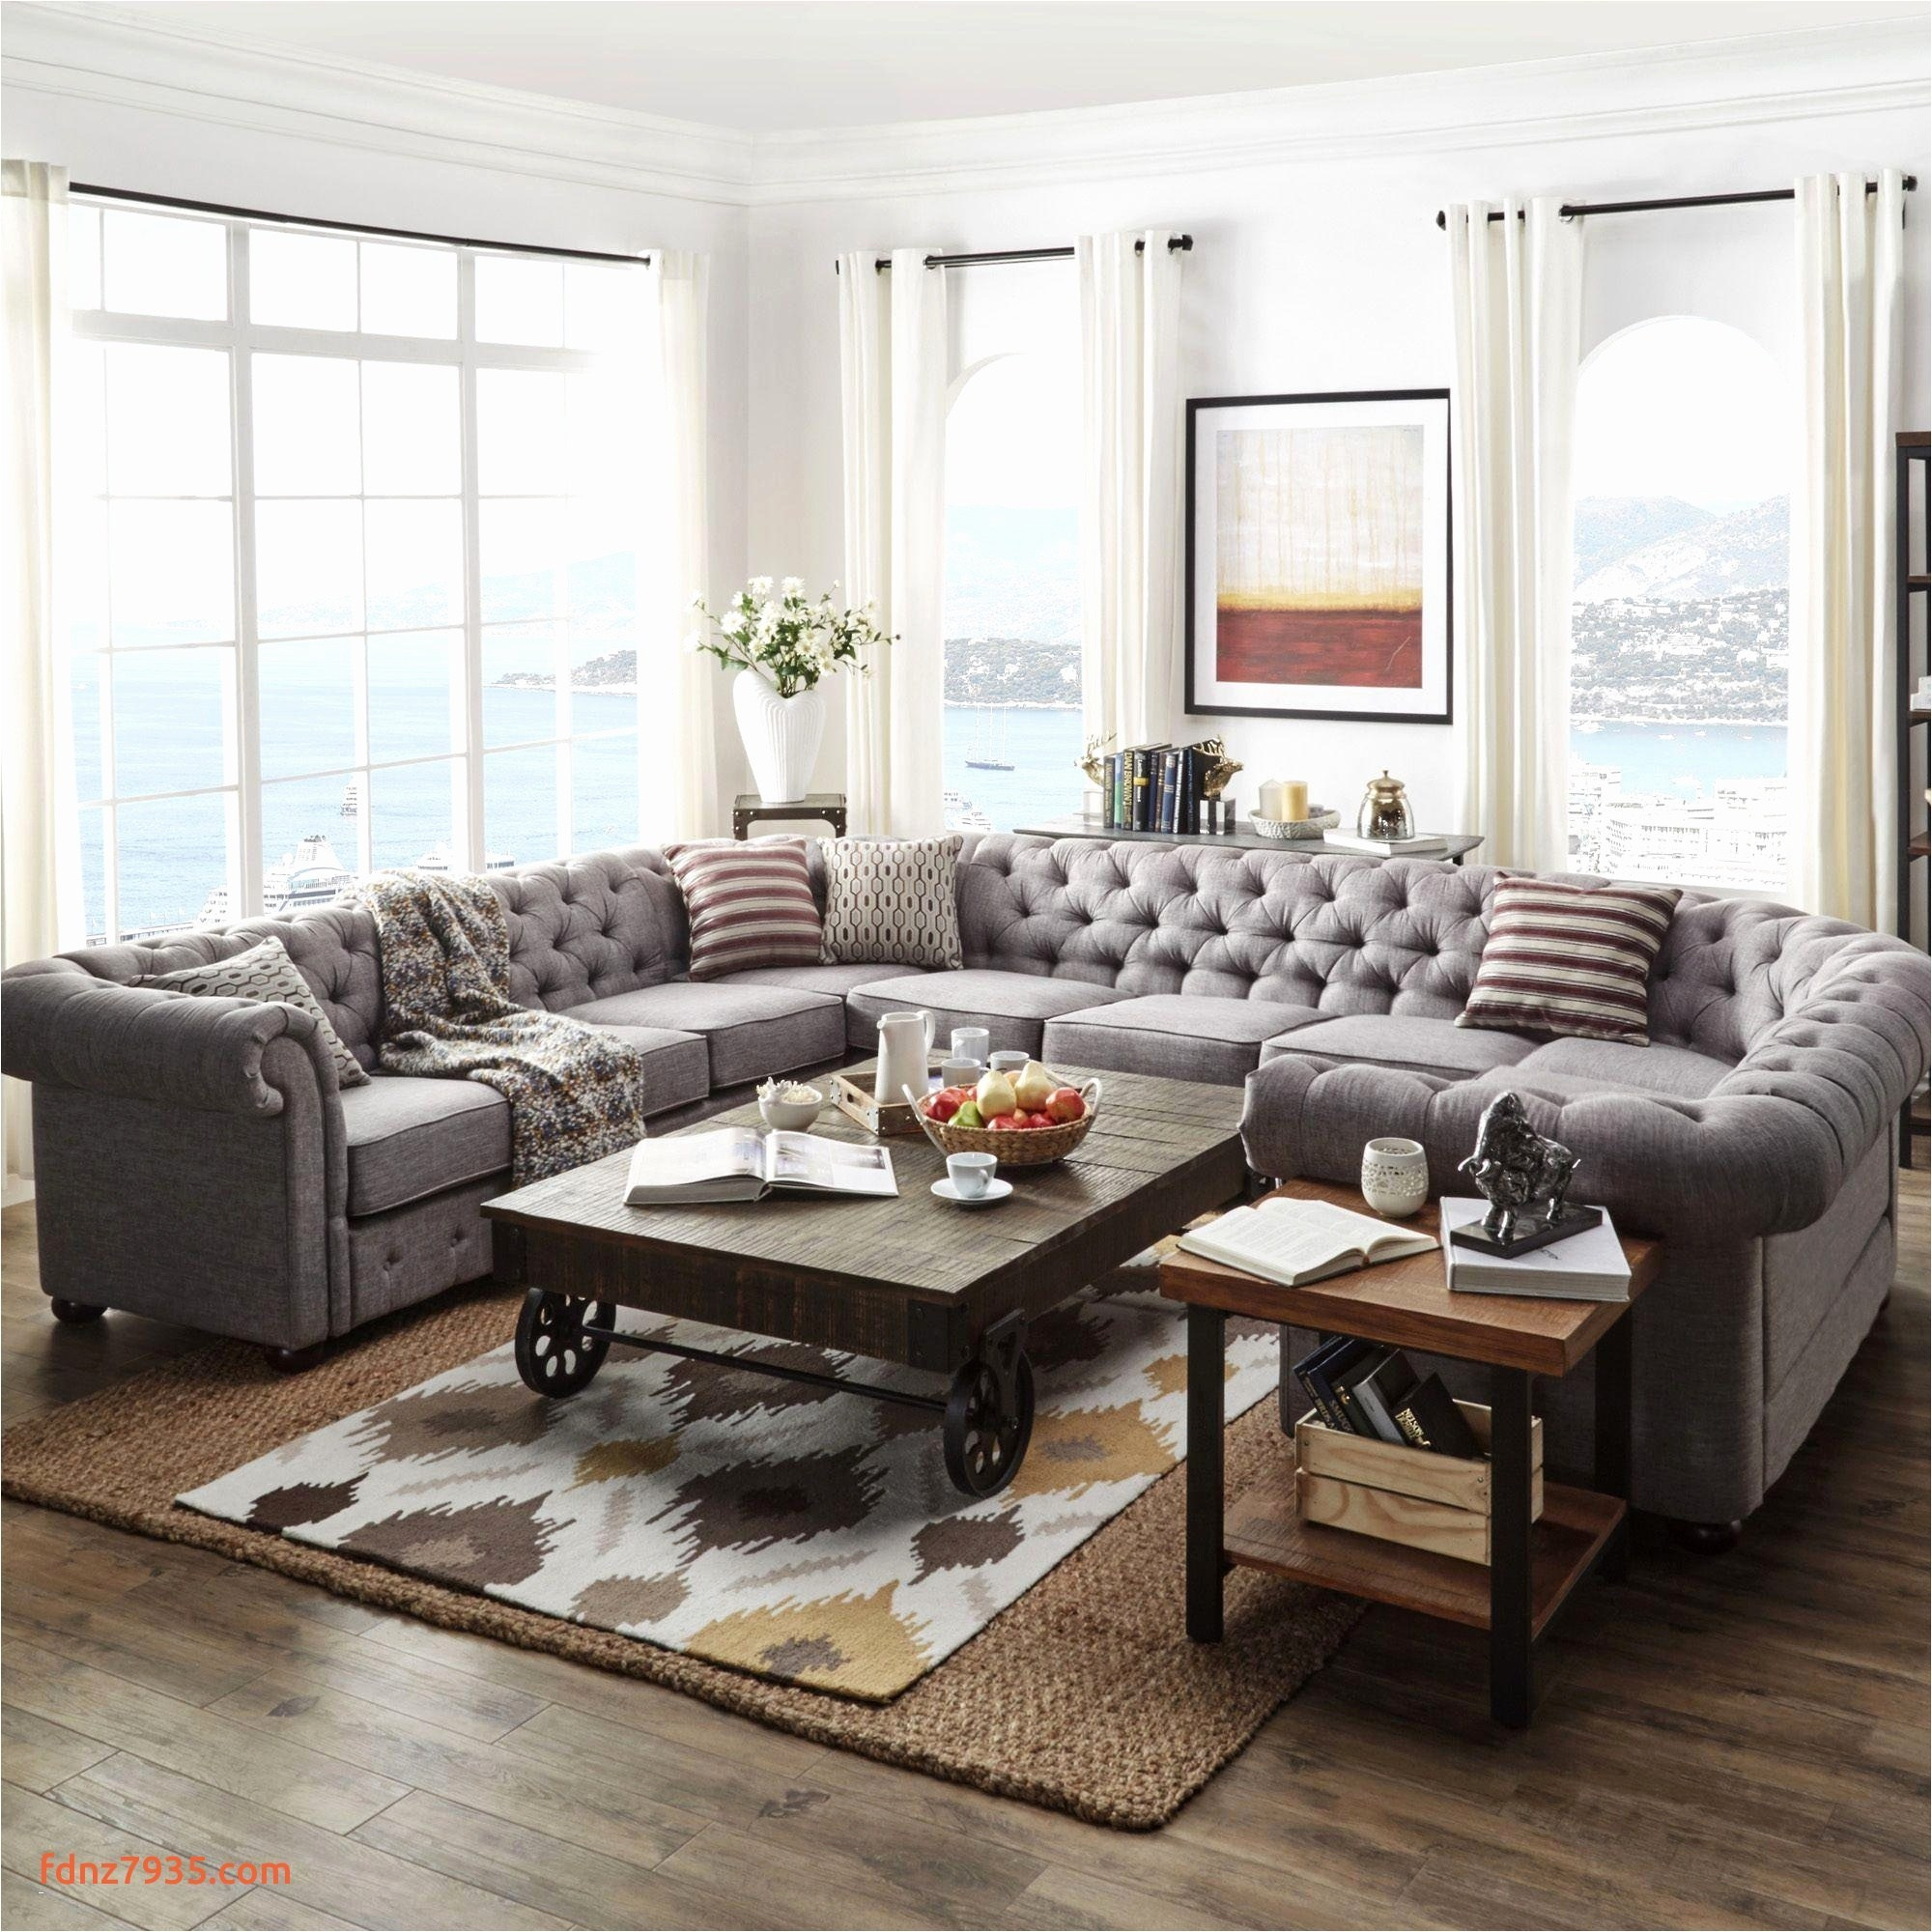 Home Ideas Elegant Living Room Set Fascinating Lovely Affordable with 11 Awesome Initiatives of How to Makeover Affordable Living Room Sets